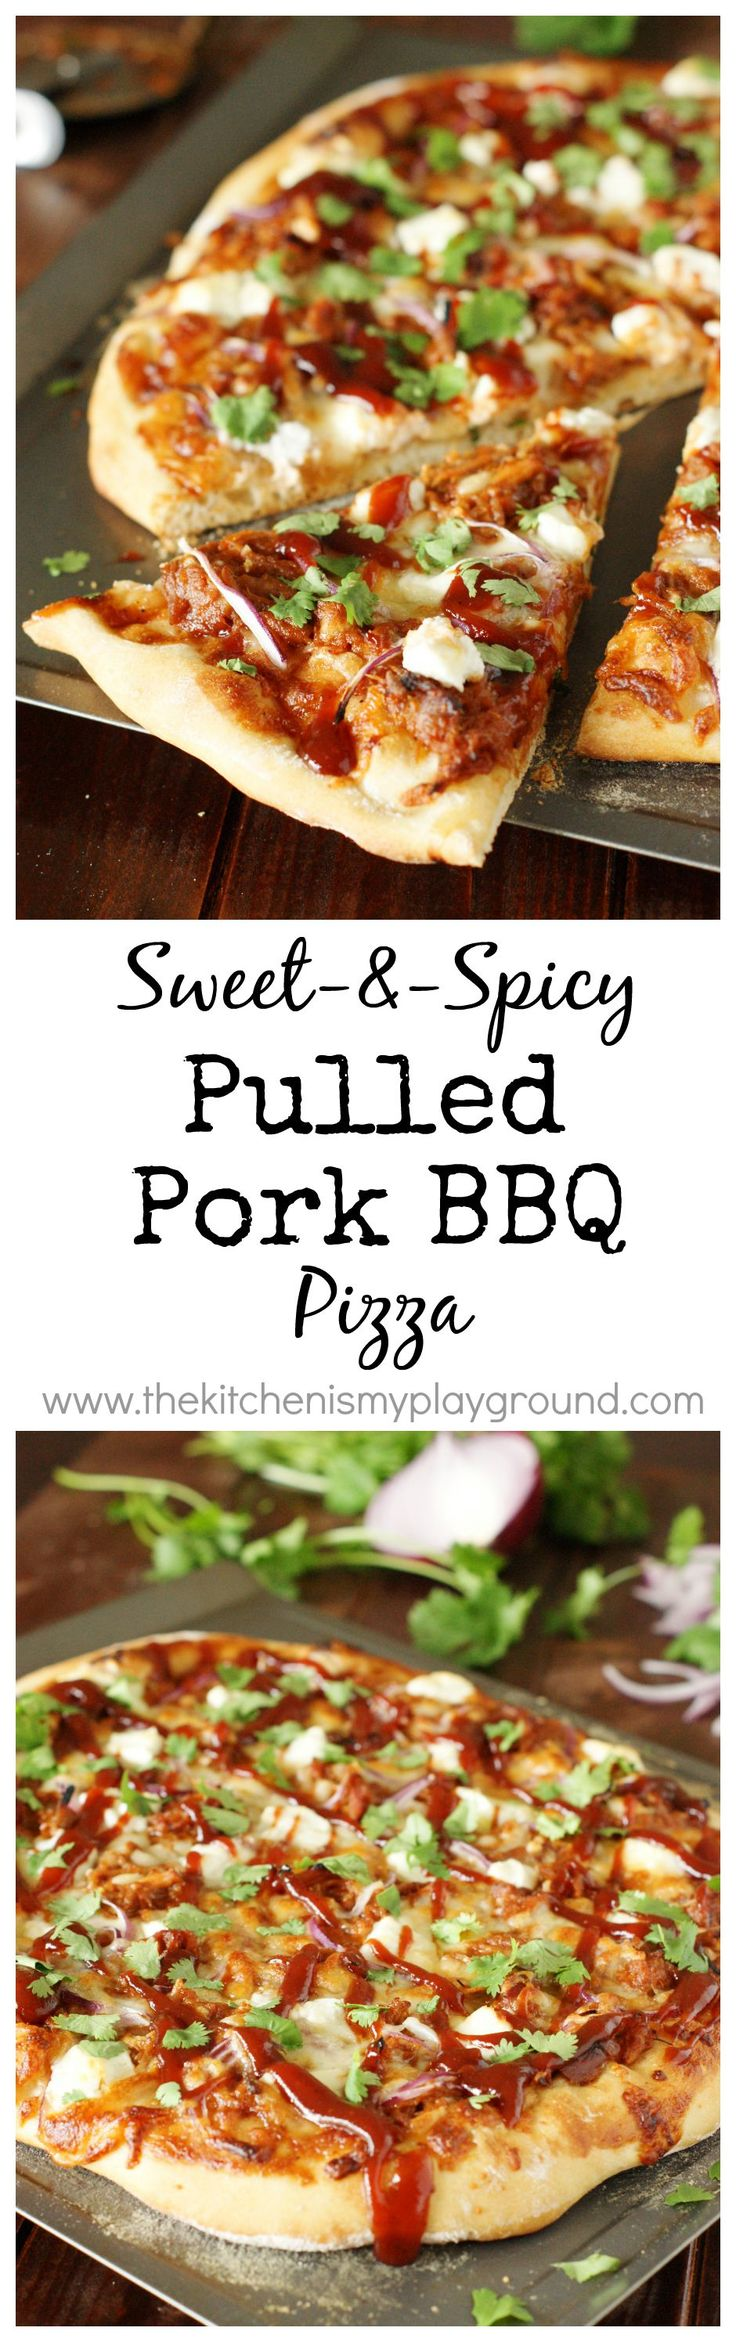 Sweet-&-Spicy Pulled Pork BBQ Pizza ~ out-of-this-world good!  ad www.thekitchenismyplayground.com